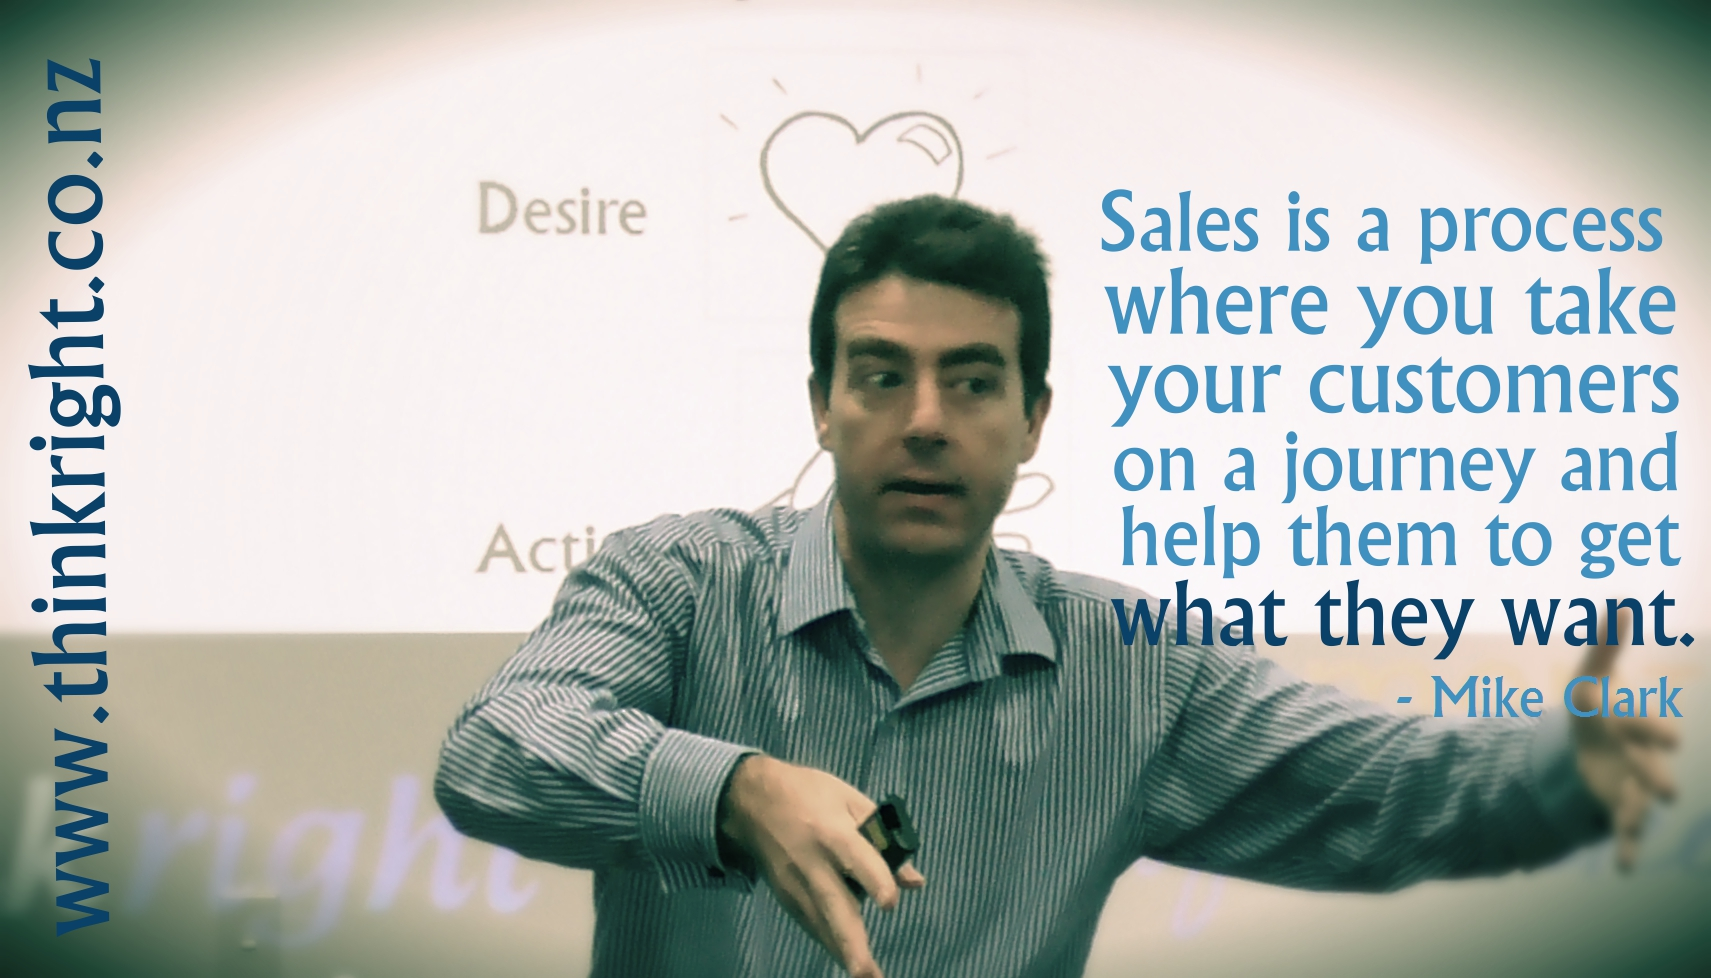 Sales is a process